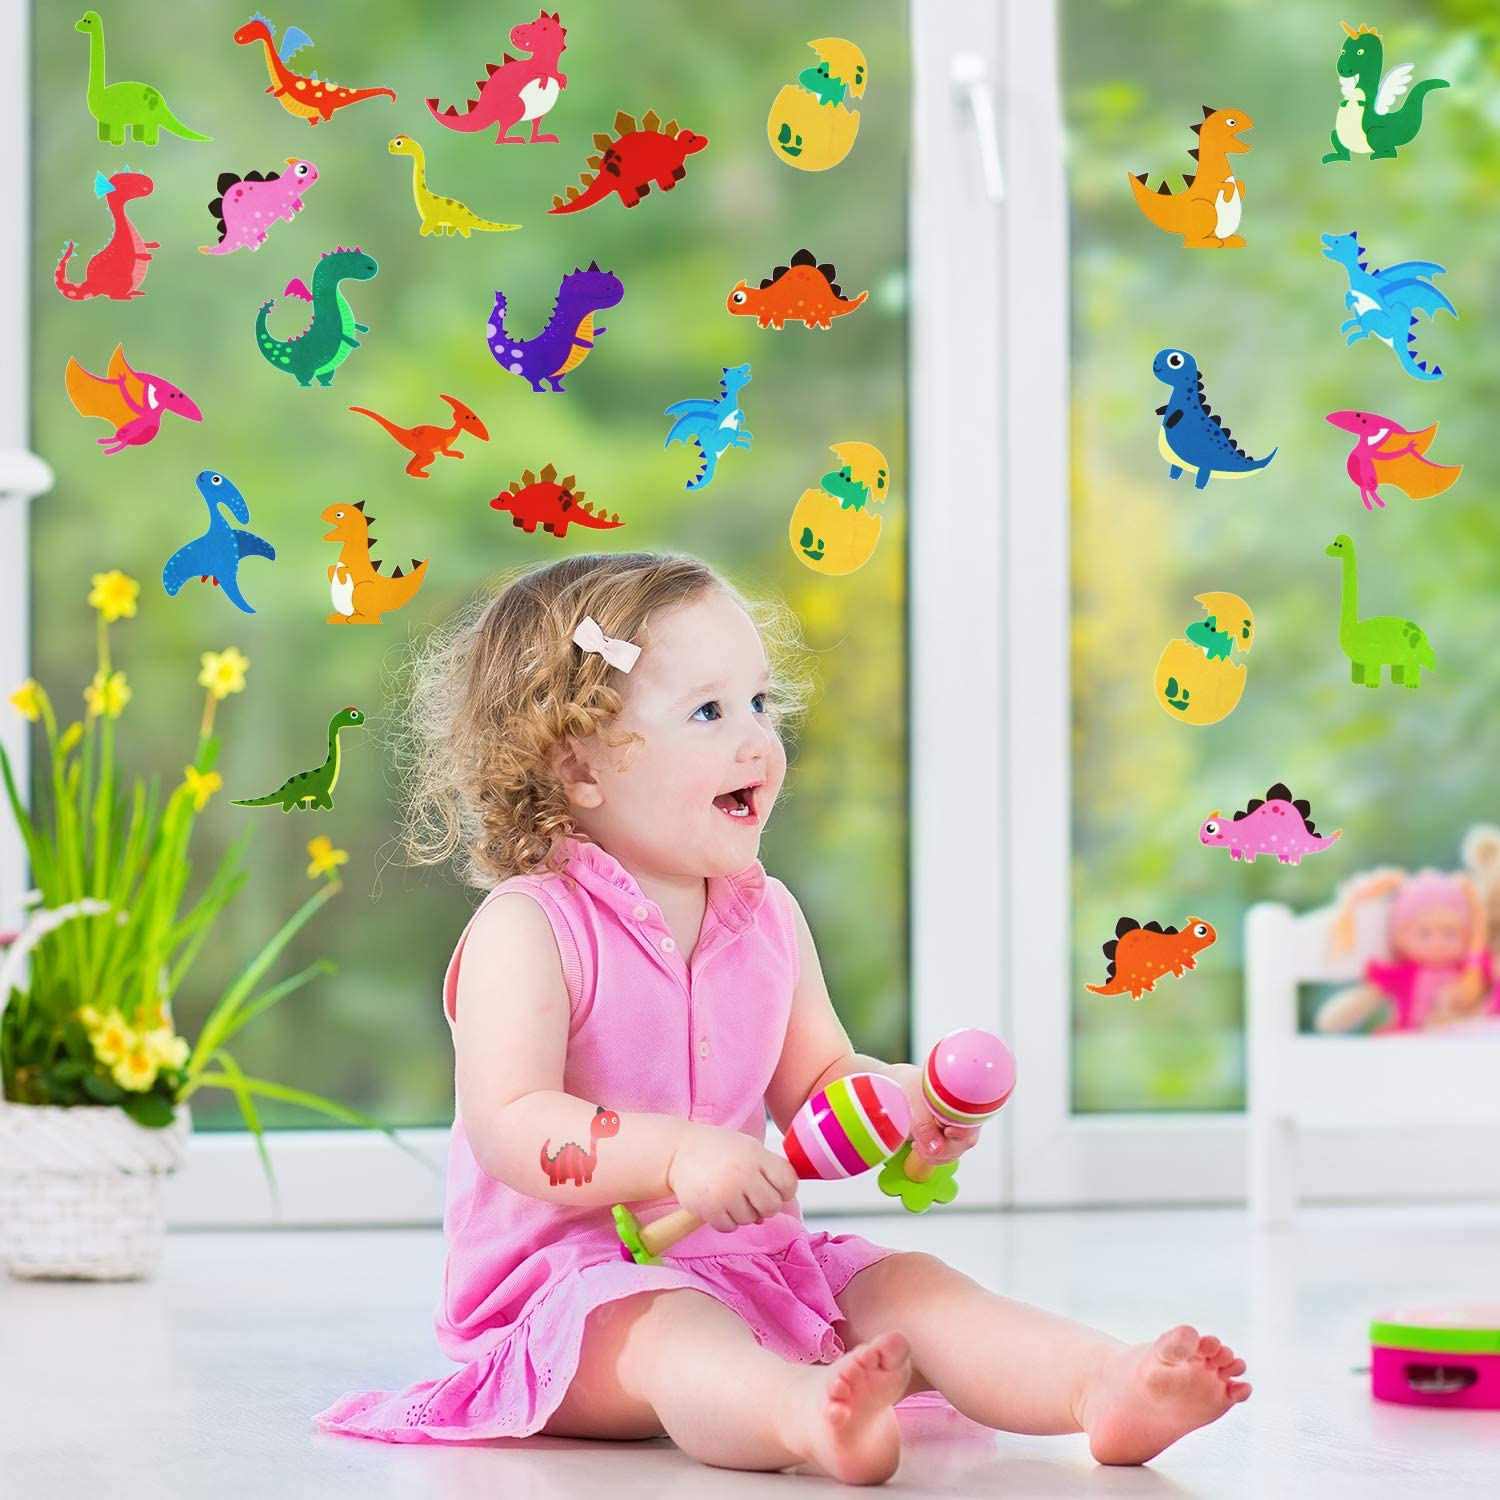 200 Pieces Dinosaur Theme Window Clings Removable Window Clings Decals Non-Adhesive Static Window Stickers for Glass Windows Home Classroom